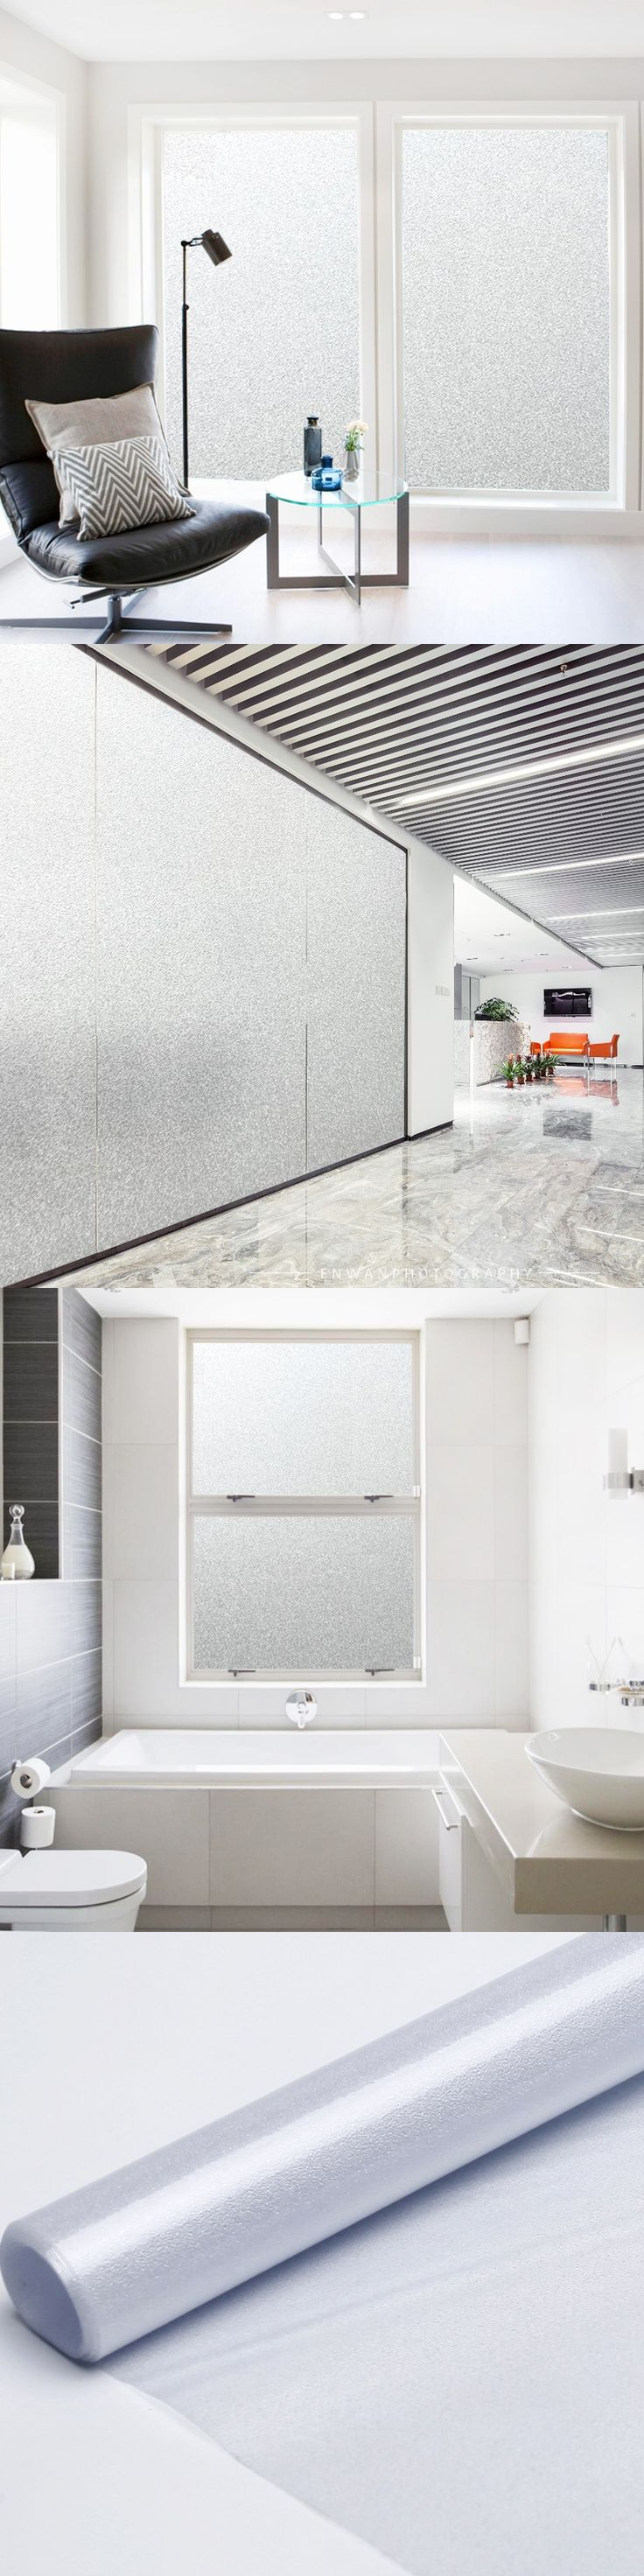 45*500cm No Glue Vinyl Static Cling Frosted Privacy Stained Glass Door Window Film Anti UV Bathroom Decor WMBLT-45MJ